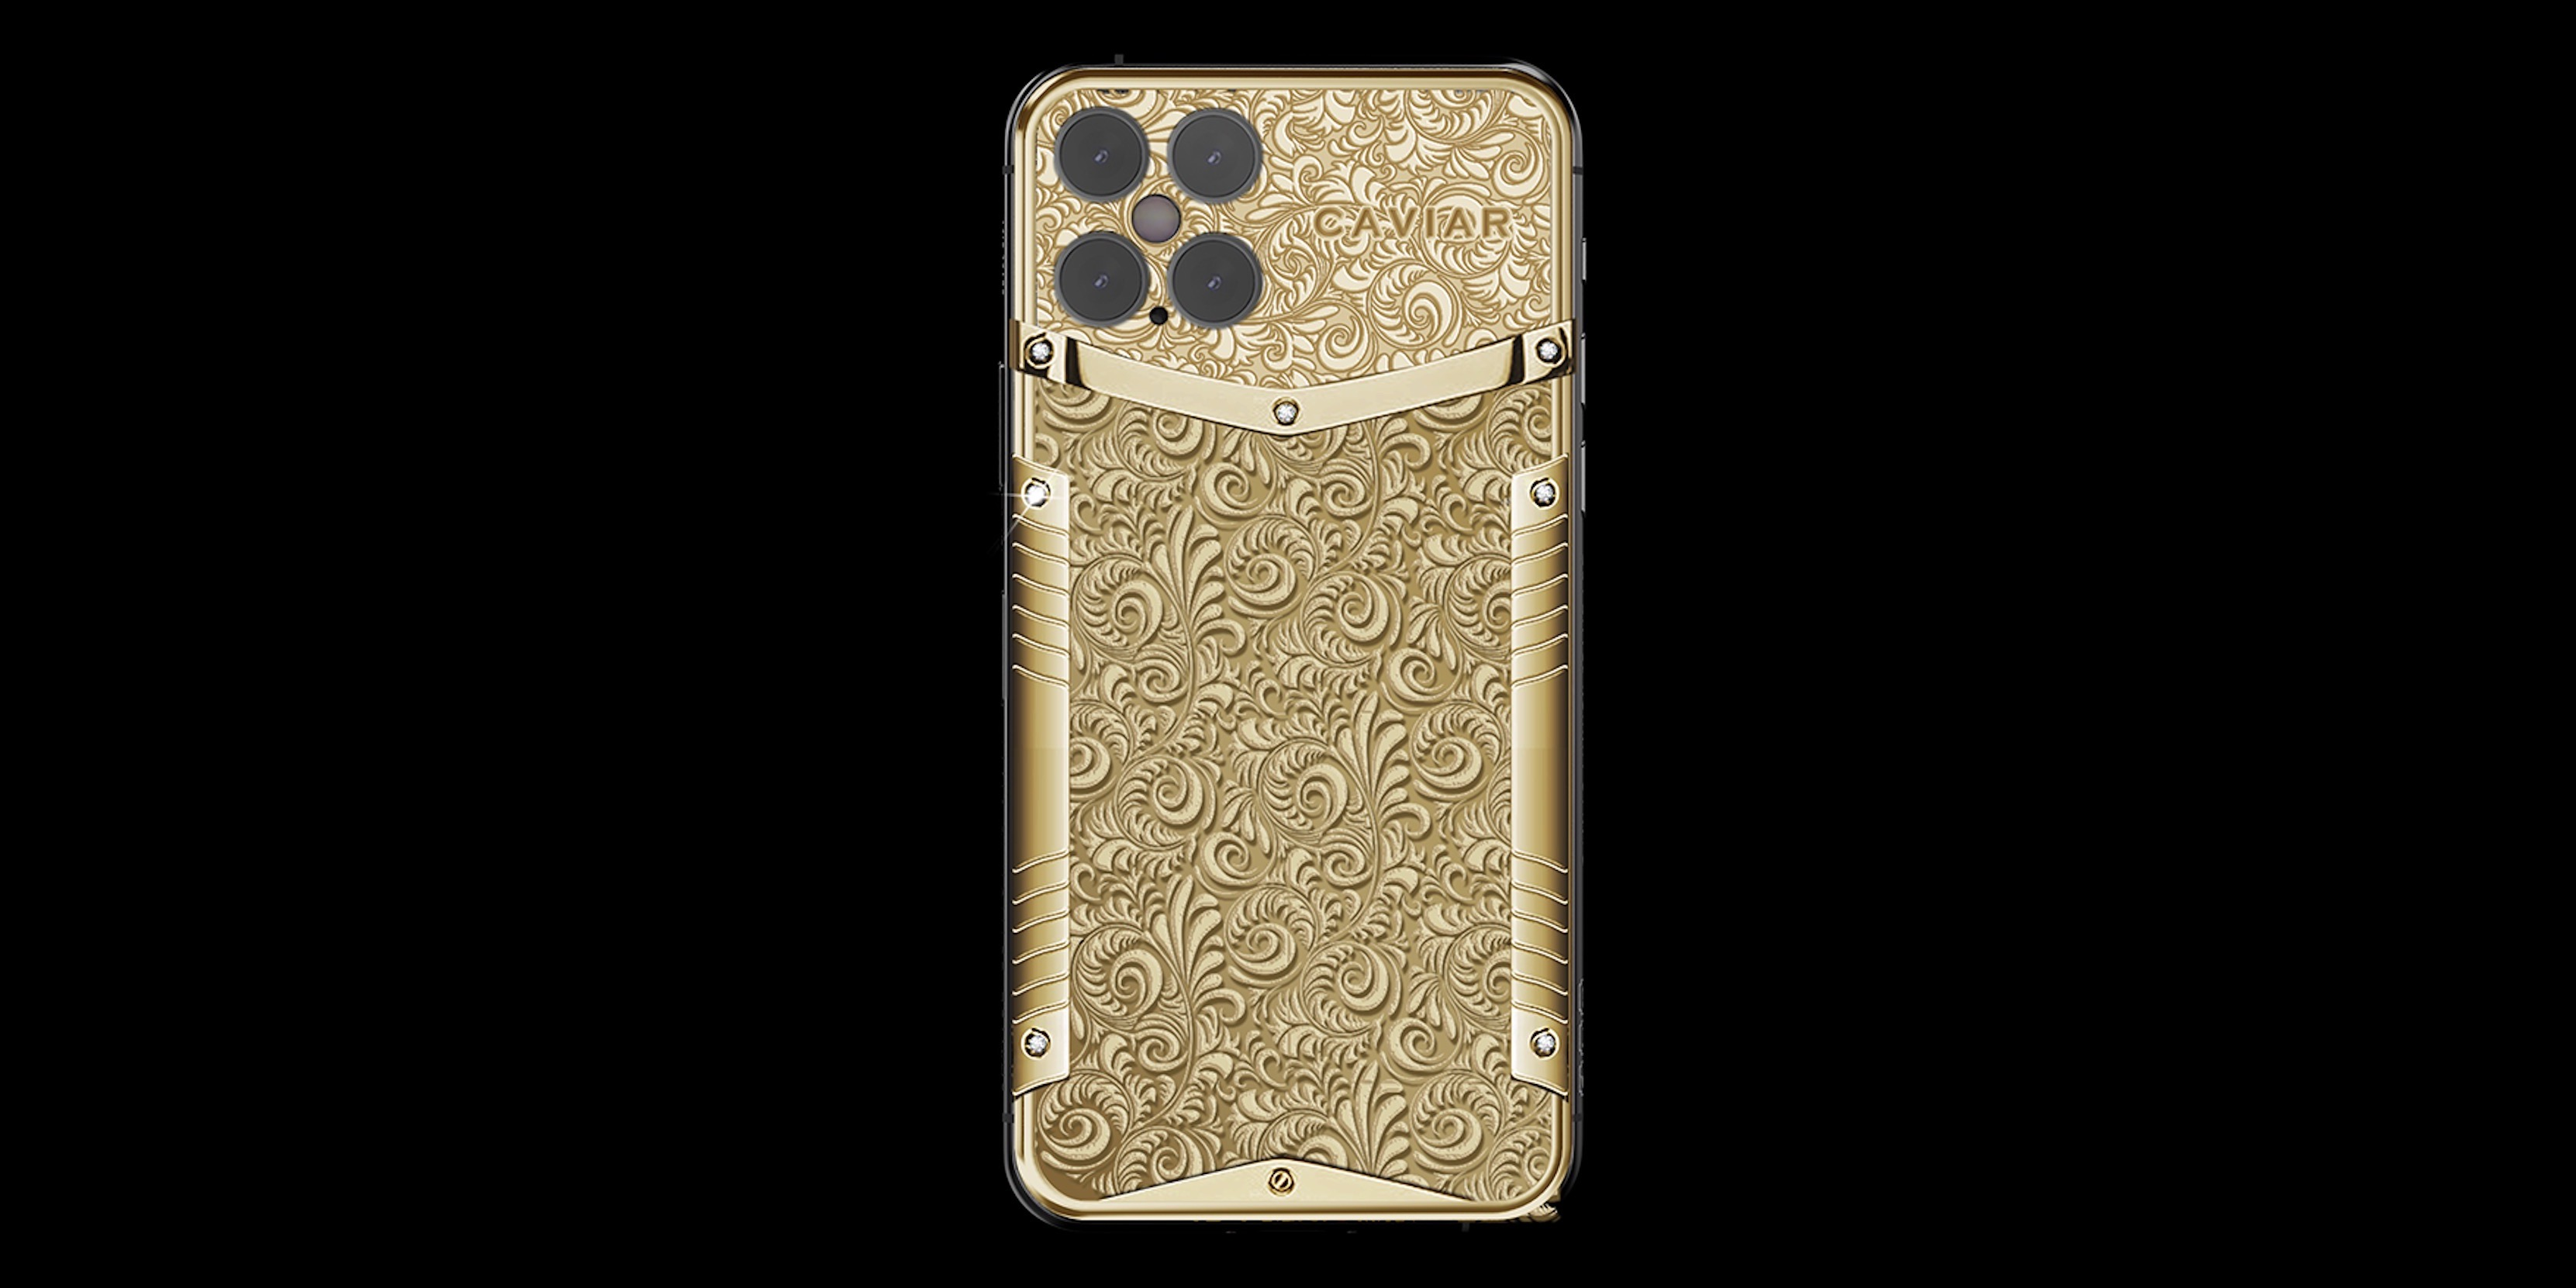 Russian Company Offers Ugly Solid Gold Iphone 12 For 23k 9to5mac